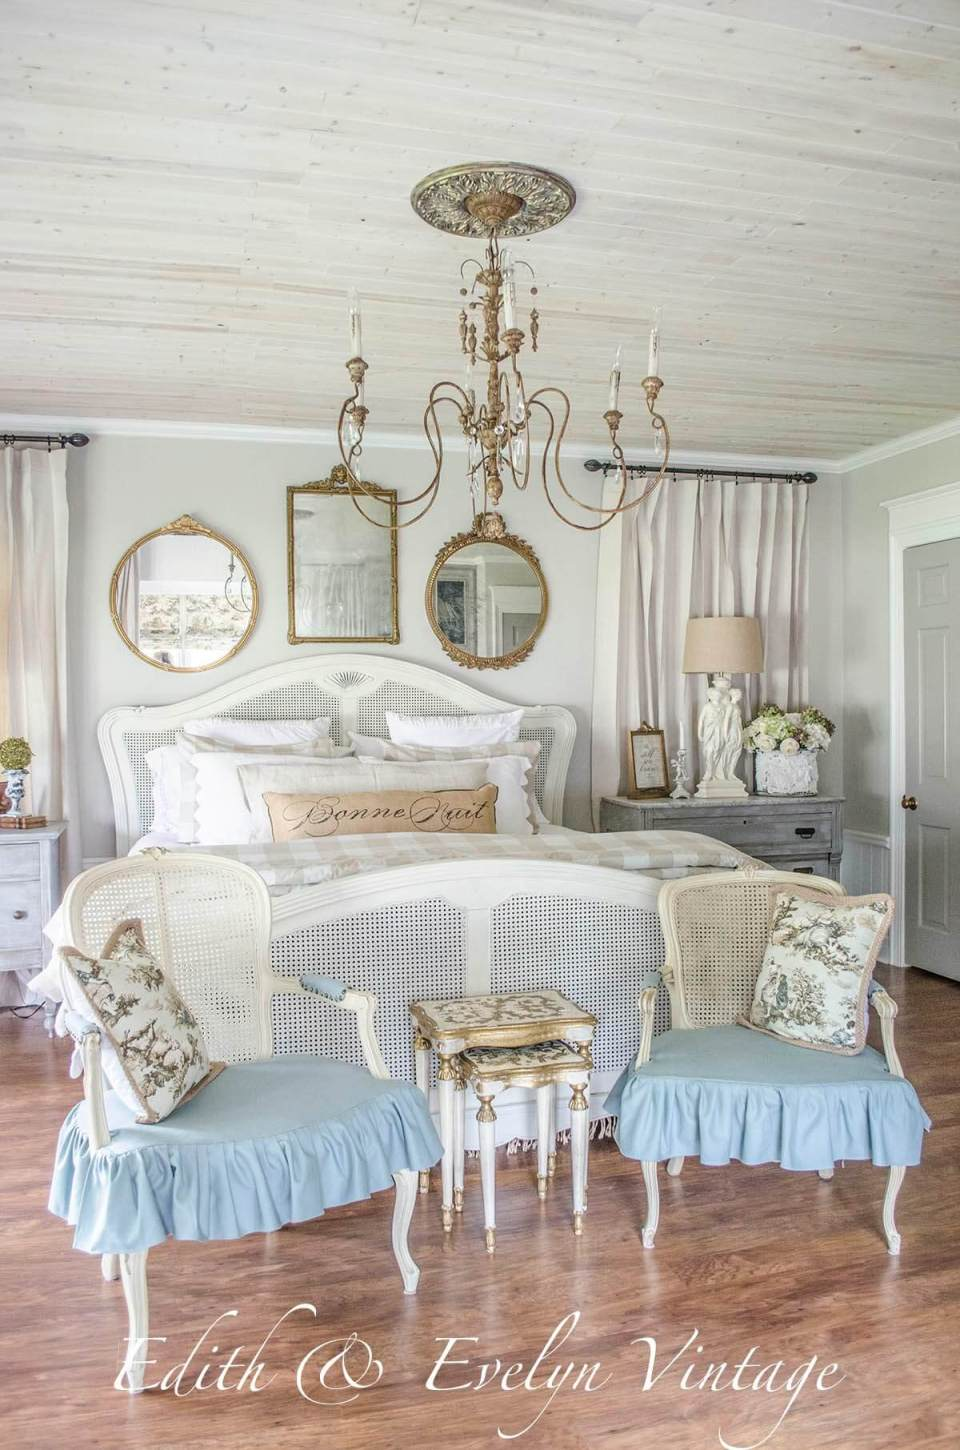 Transformation of the Master Bedroom